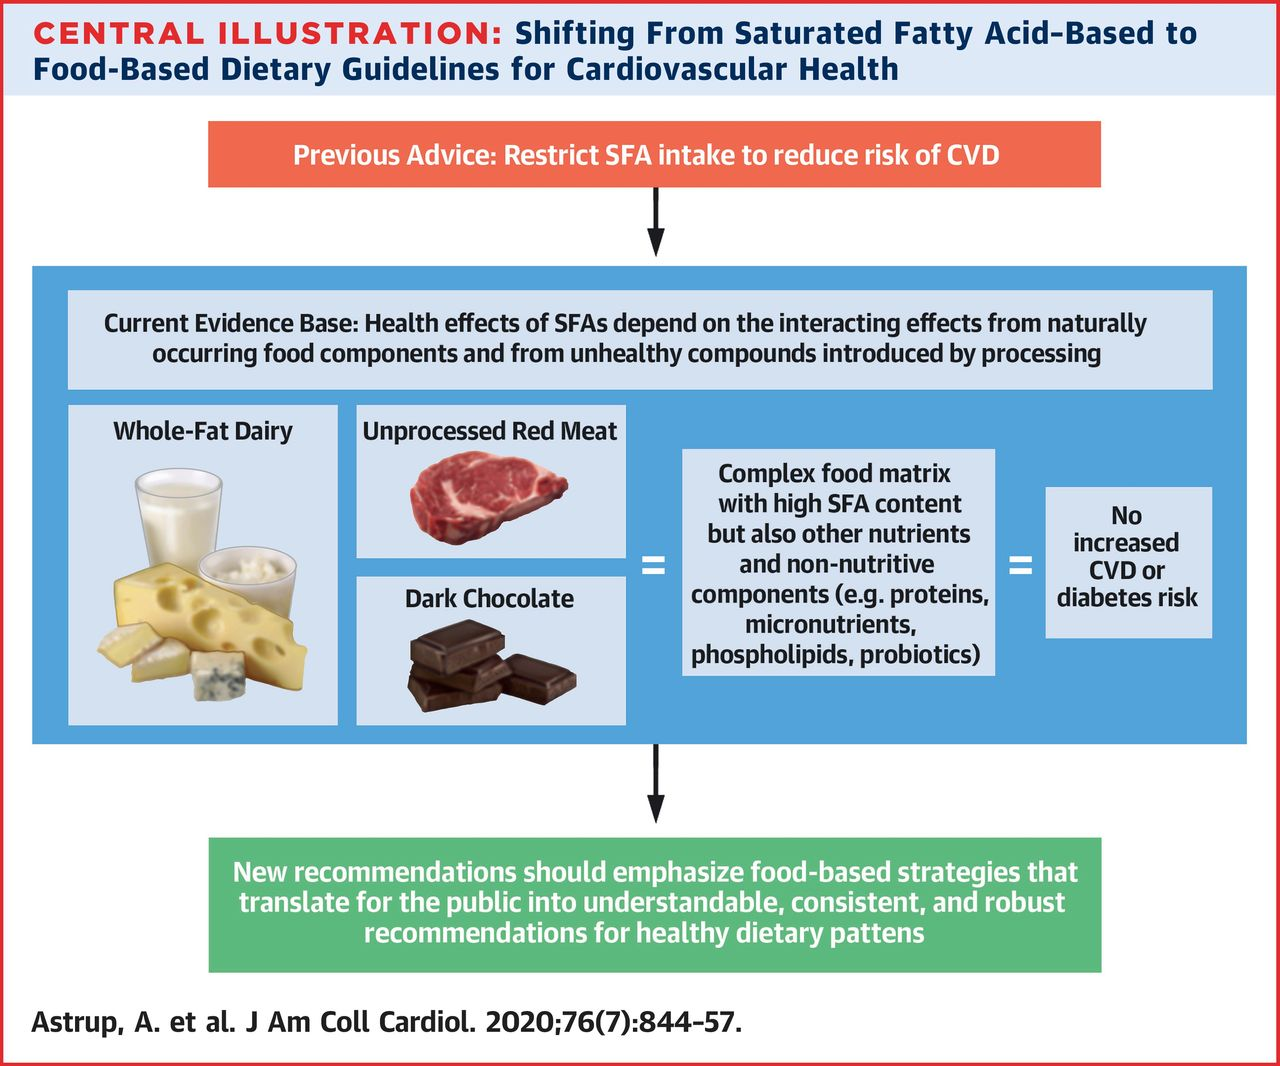 Saturated Fats and Health: A Reassessment and Proposal for Food-Based Recommendations | JACC: Journal of the American College of Cardiology